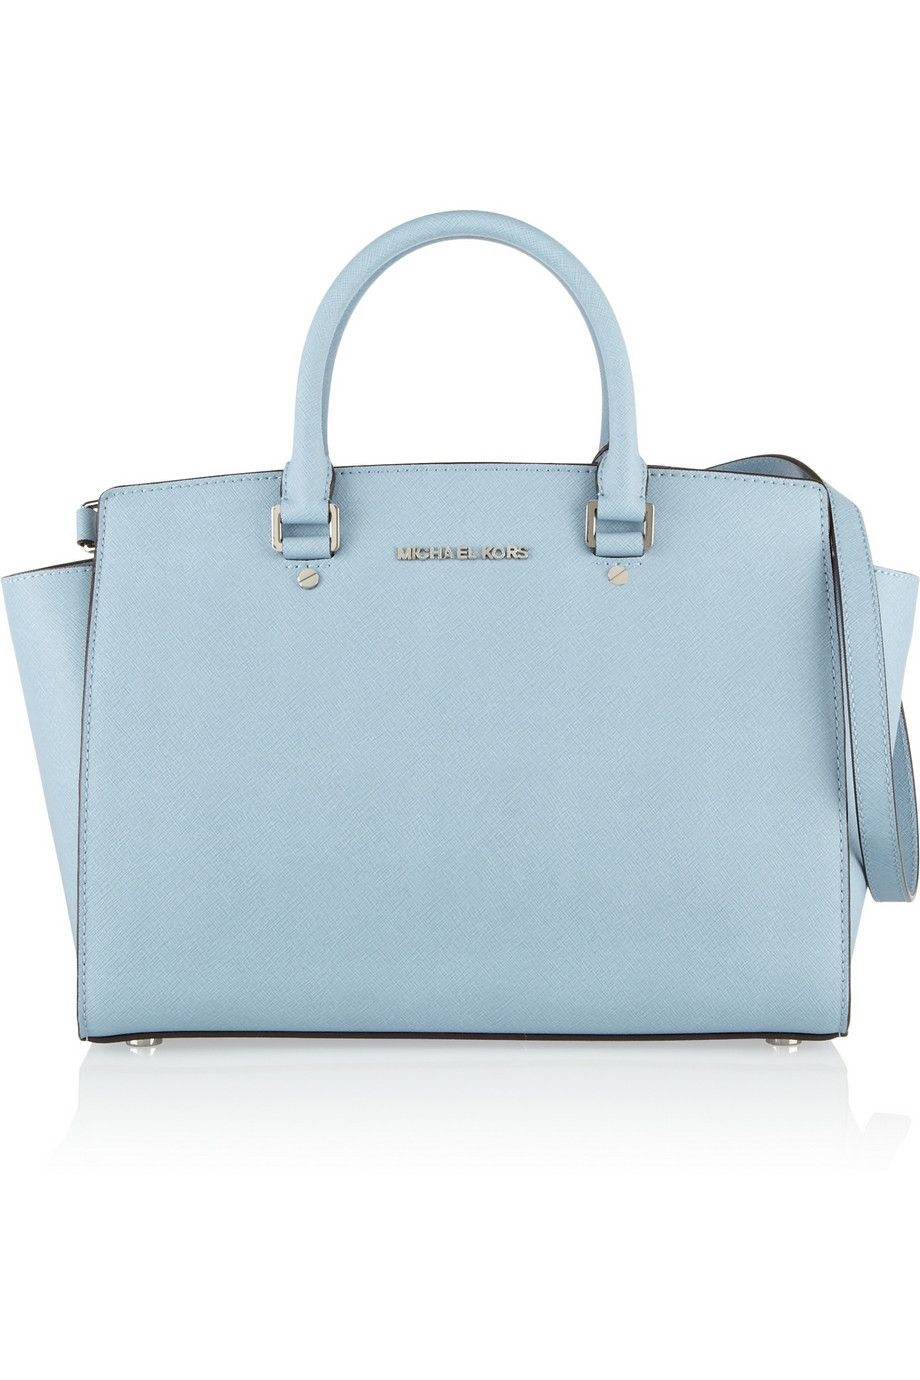 Le Meilleur Michael Michael Kors Selma Large Textured Leather Tote Ce Mois Ci